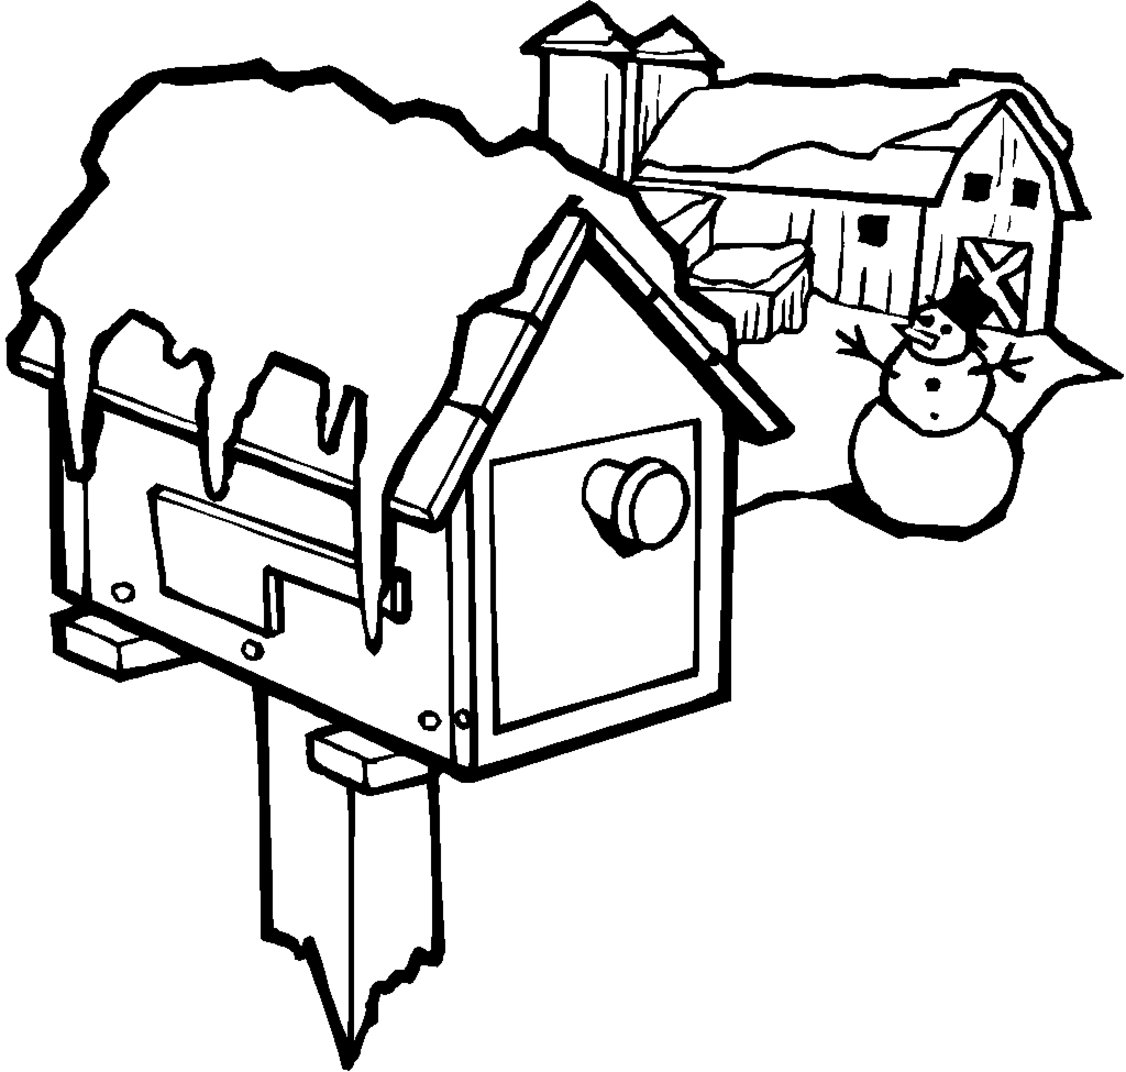 1126x1072 Awesome Merry Christmas Clip Art Black White With Merry Christmas